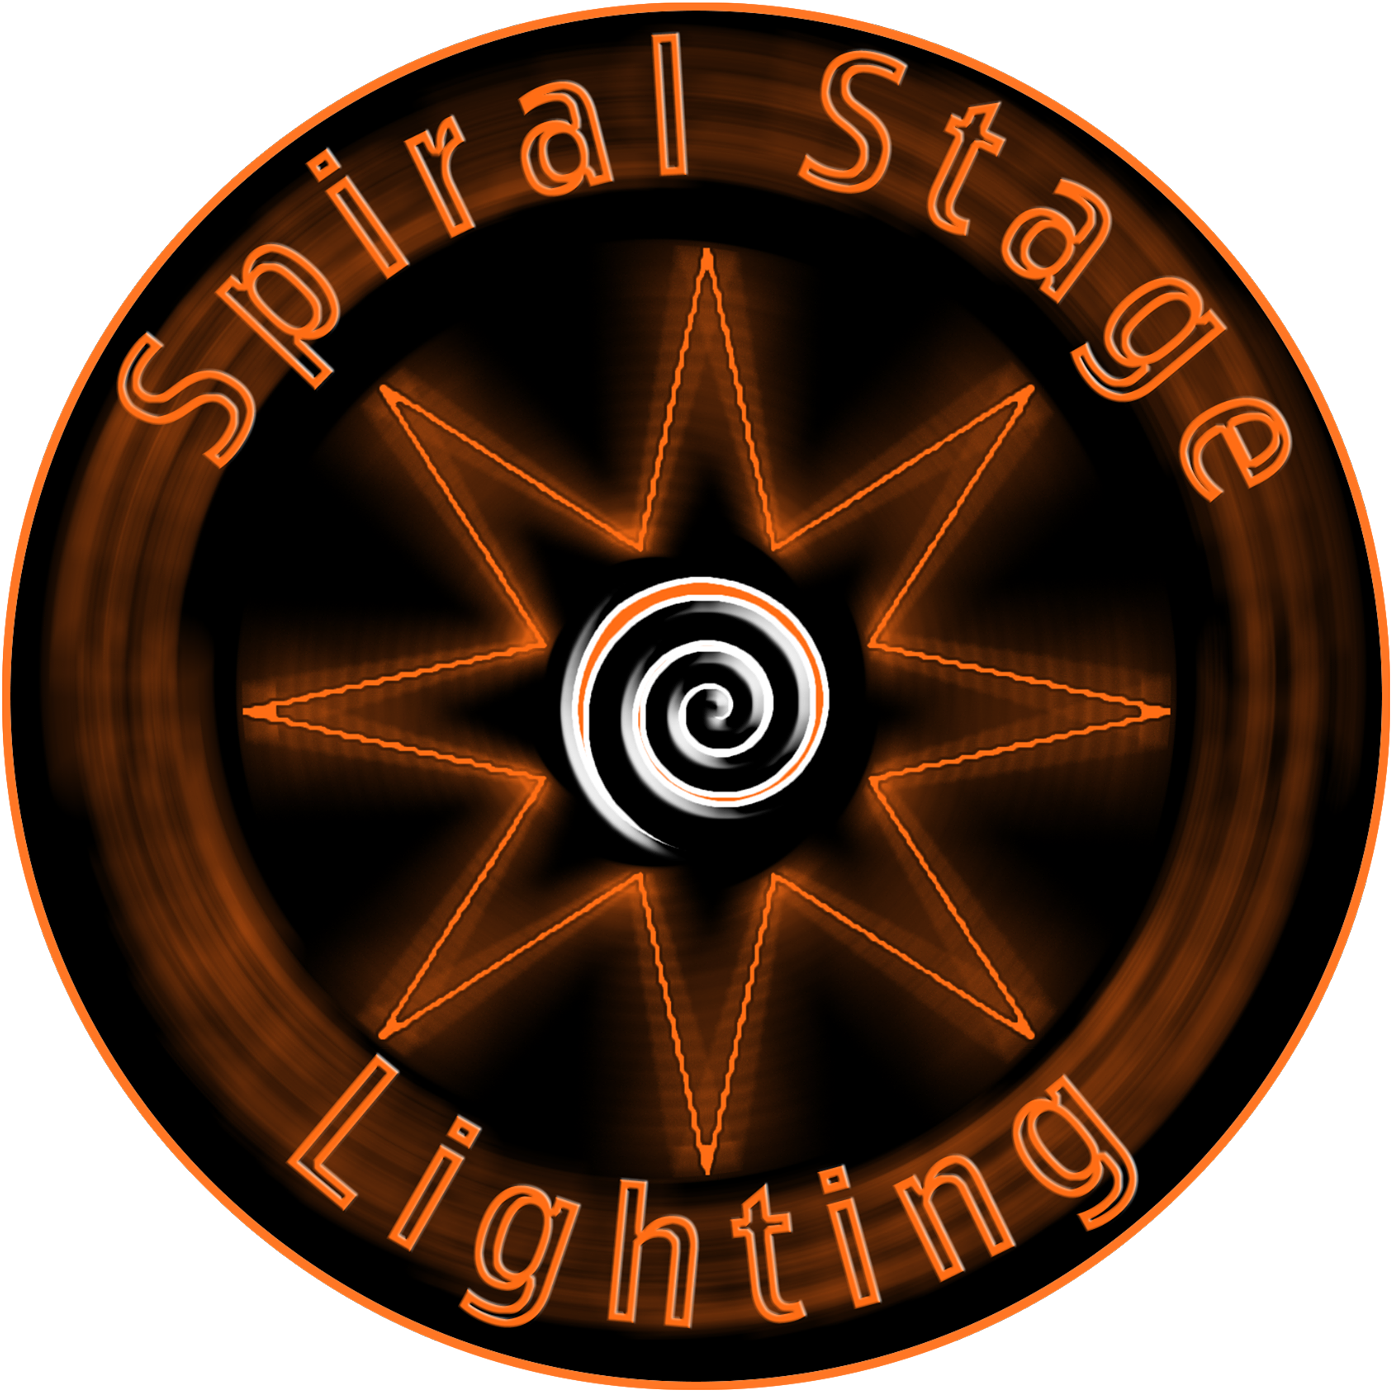 Spiralstagelighting